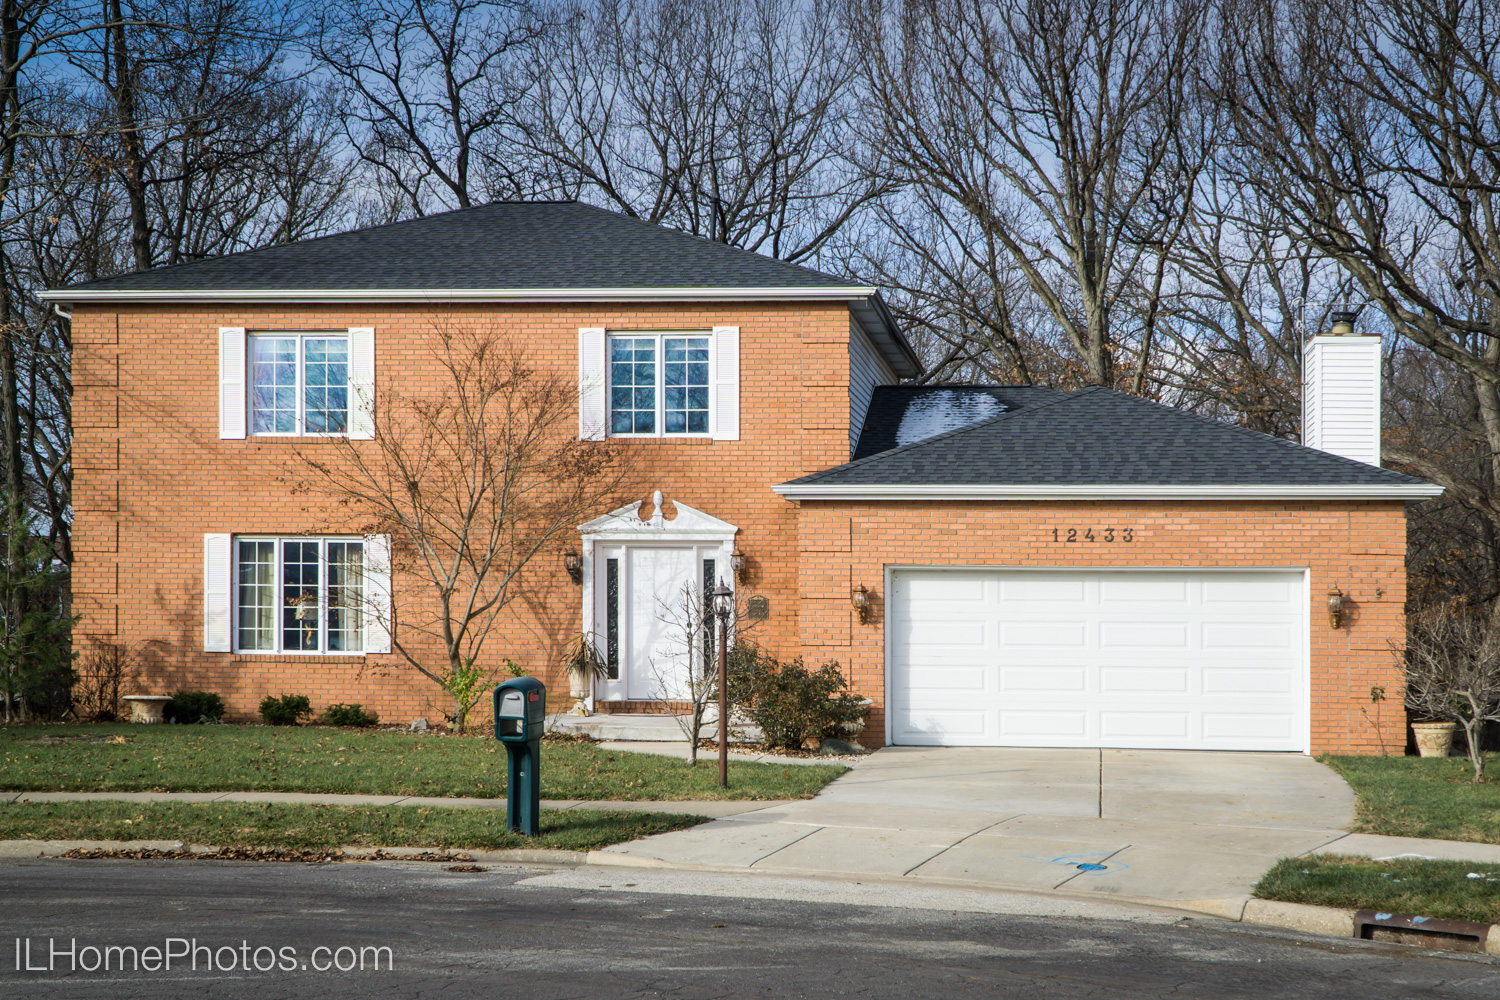 Exterior home photograph for real estate in Dunlap, IL :: Illinois Home Photography by Michael Gowin, Lincoln, IL